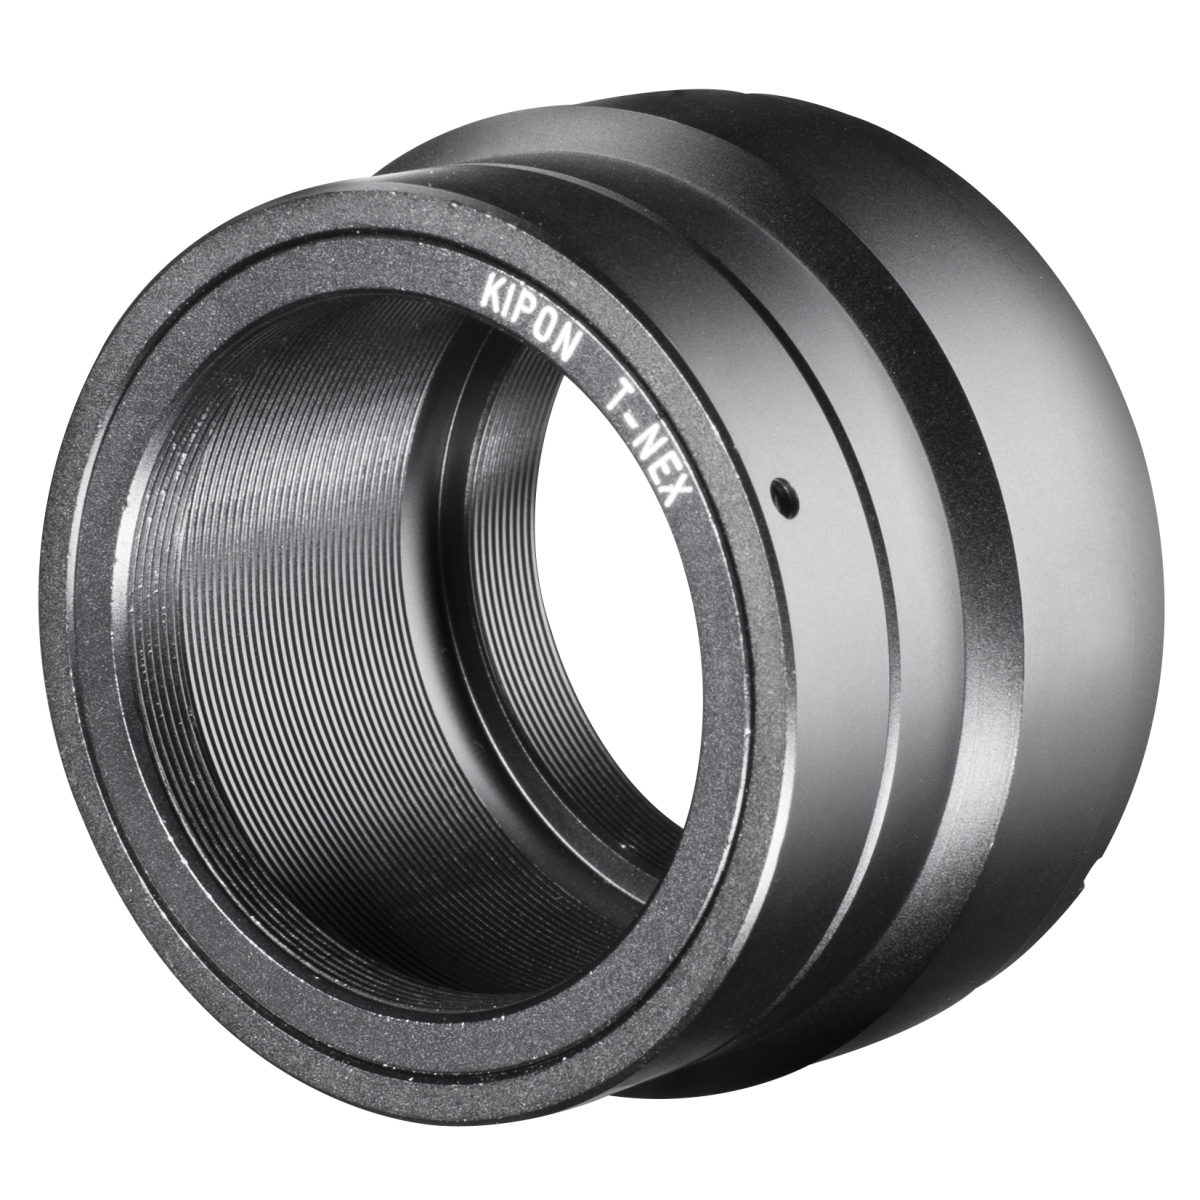 Kipon T2 Adapter for Sony E-Mount